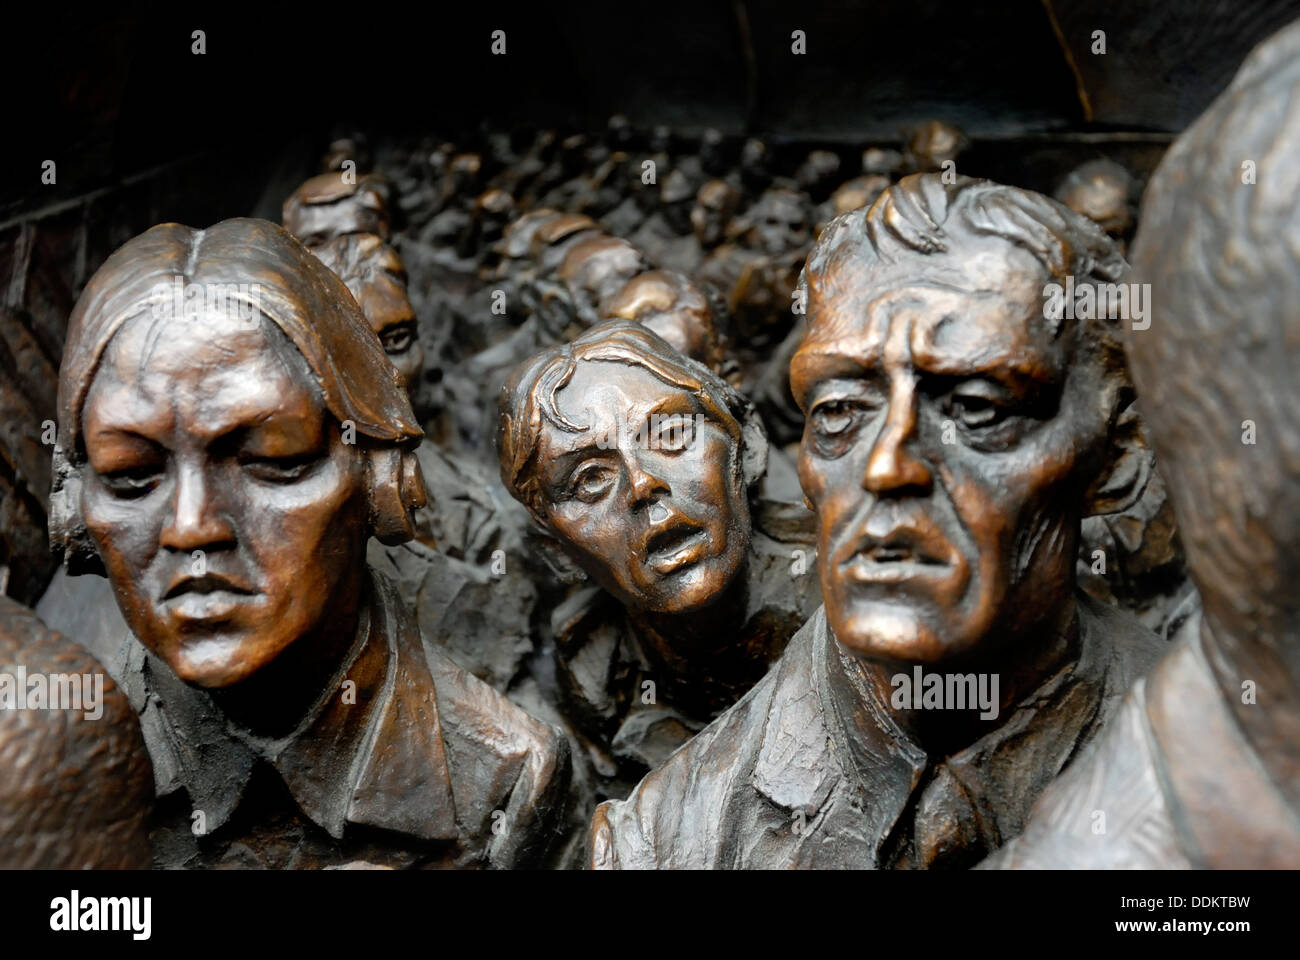 London, England, UK. St Pancras Railway Station. Detail from plinth at base of 9m high sculpture 'The Meeting Place' (Paul Day) - Stock Image